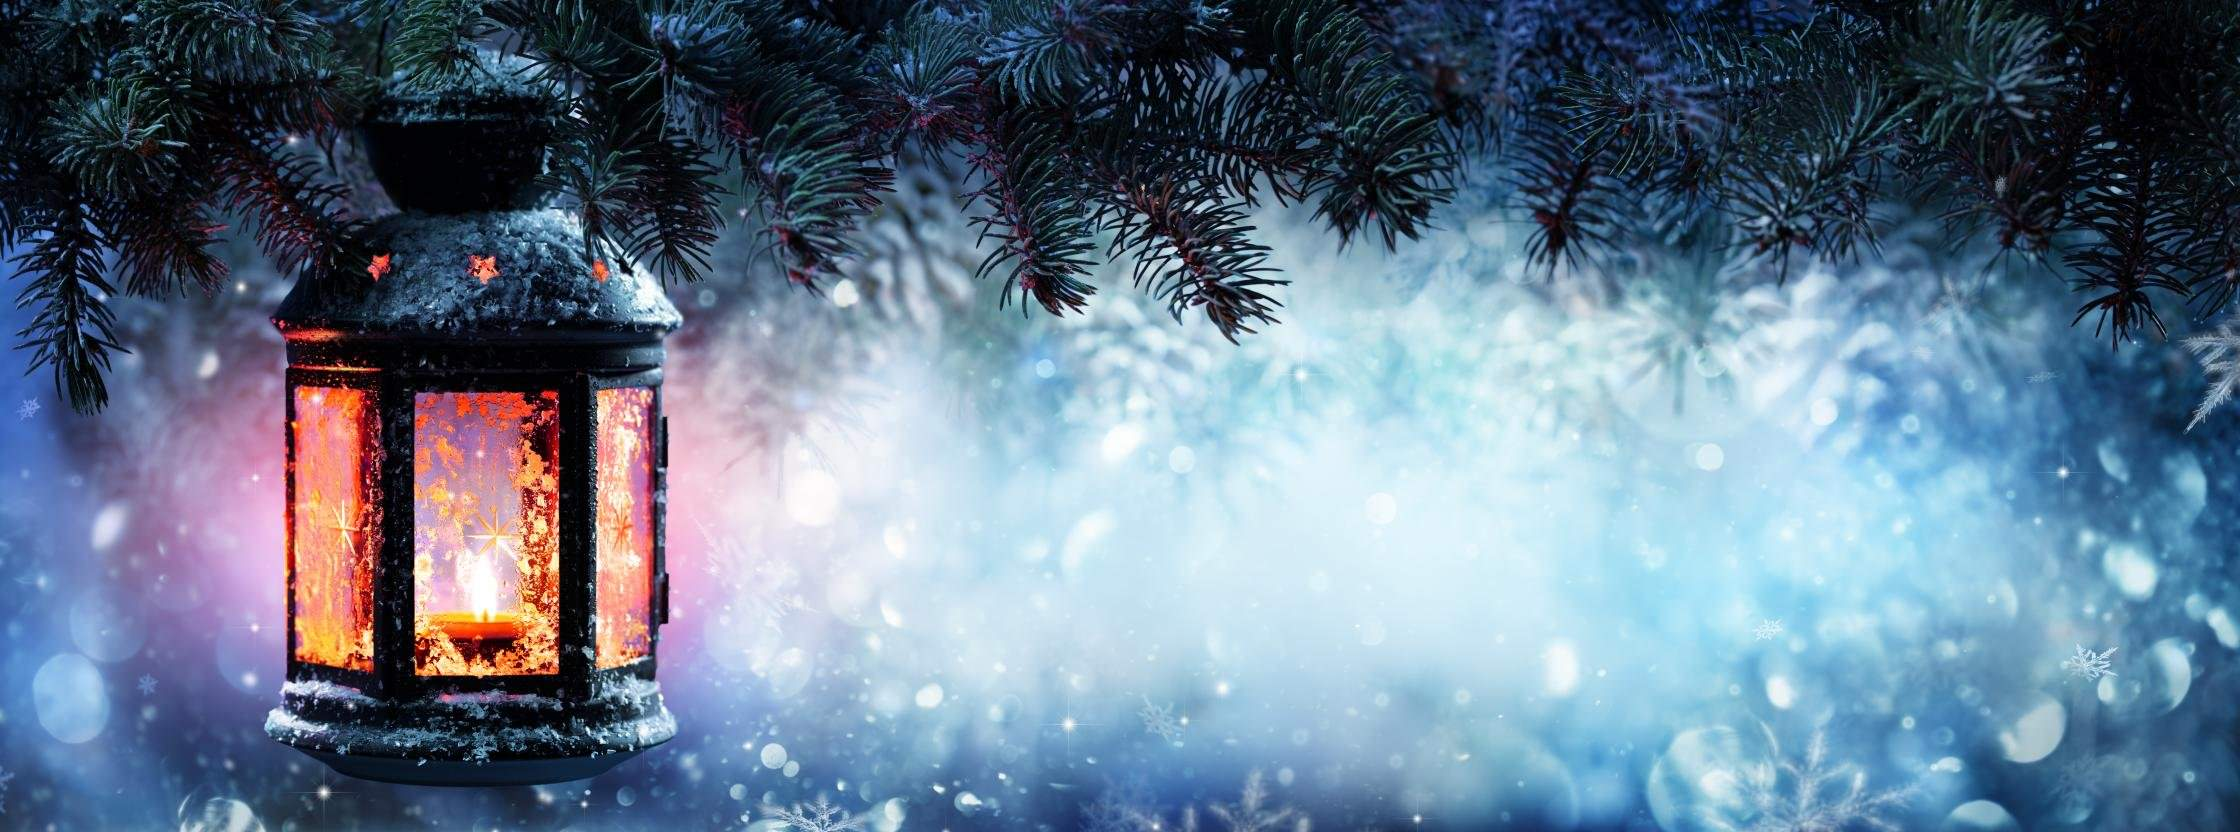 2240x832 Dual monitor Christmas wallpapers, HD backgrounds